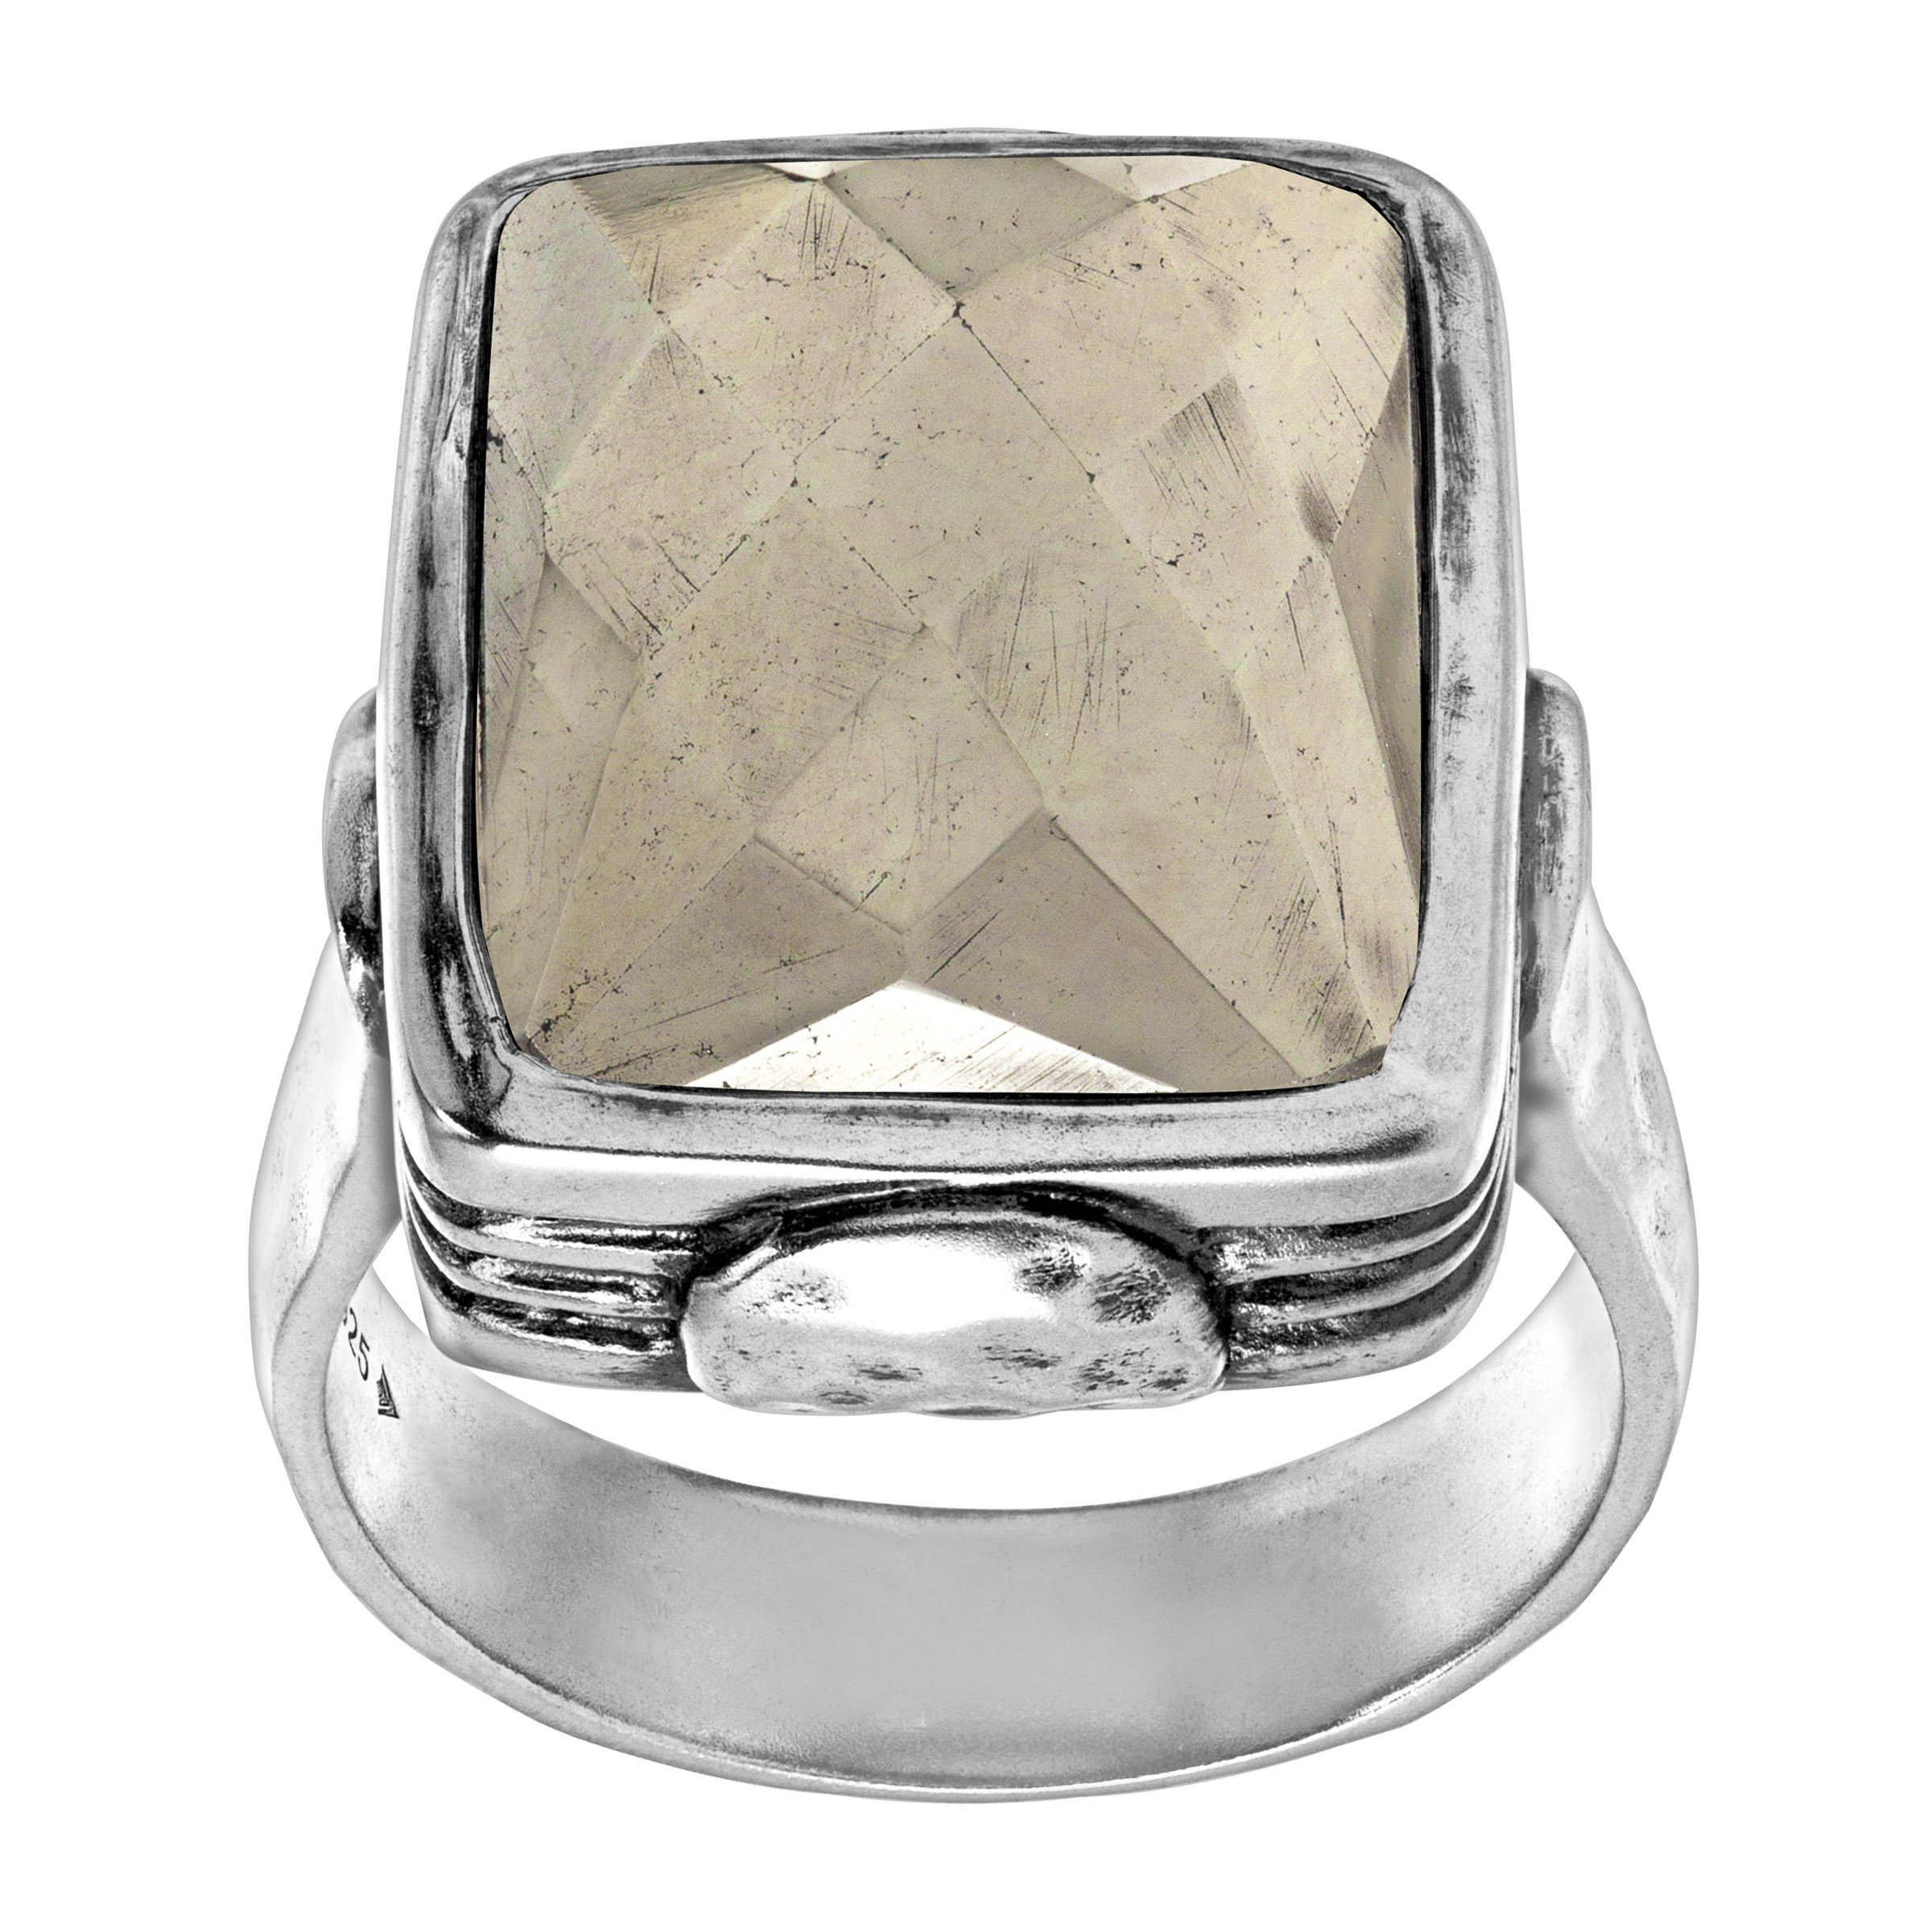 Silpada 'Amarillo' Pyrite and Sterling Silver Ring, Size 7